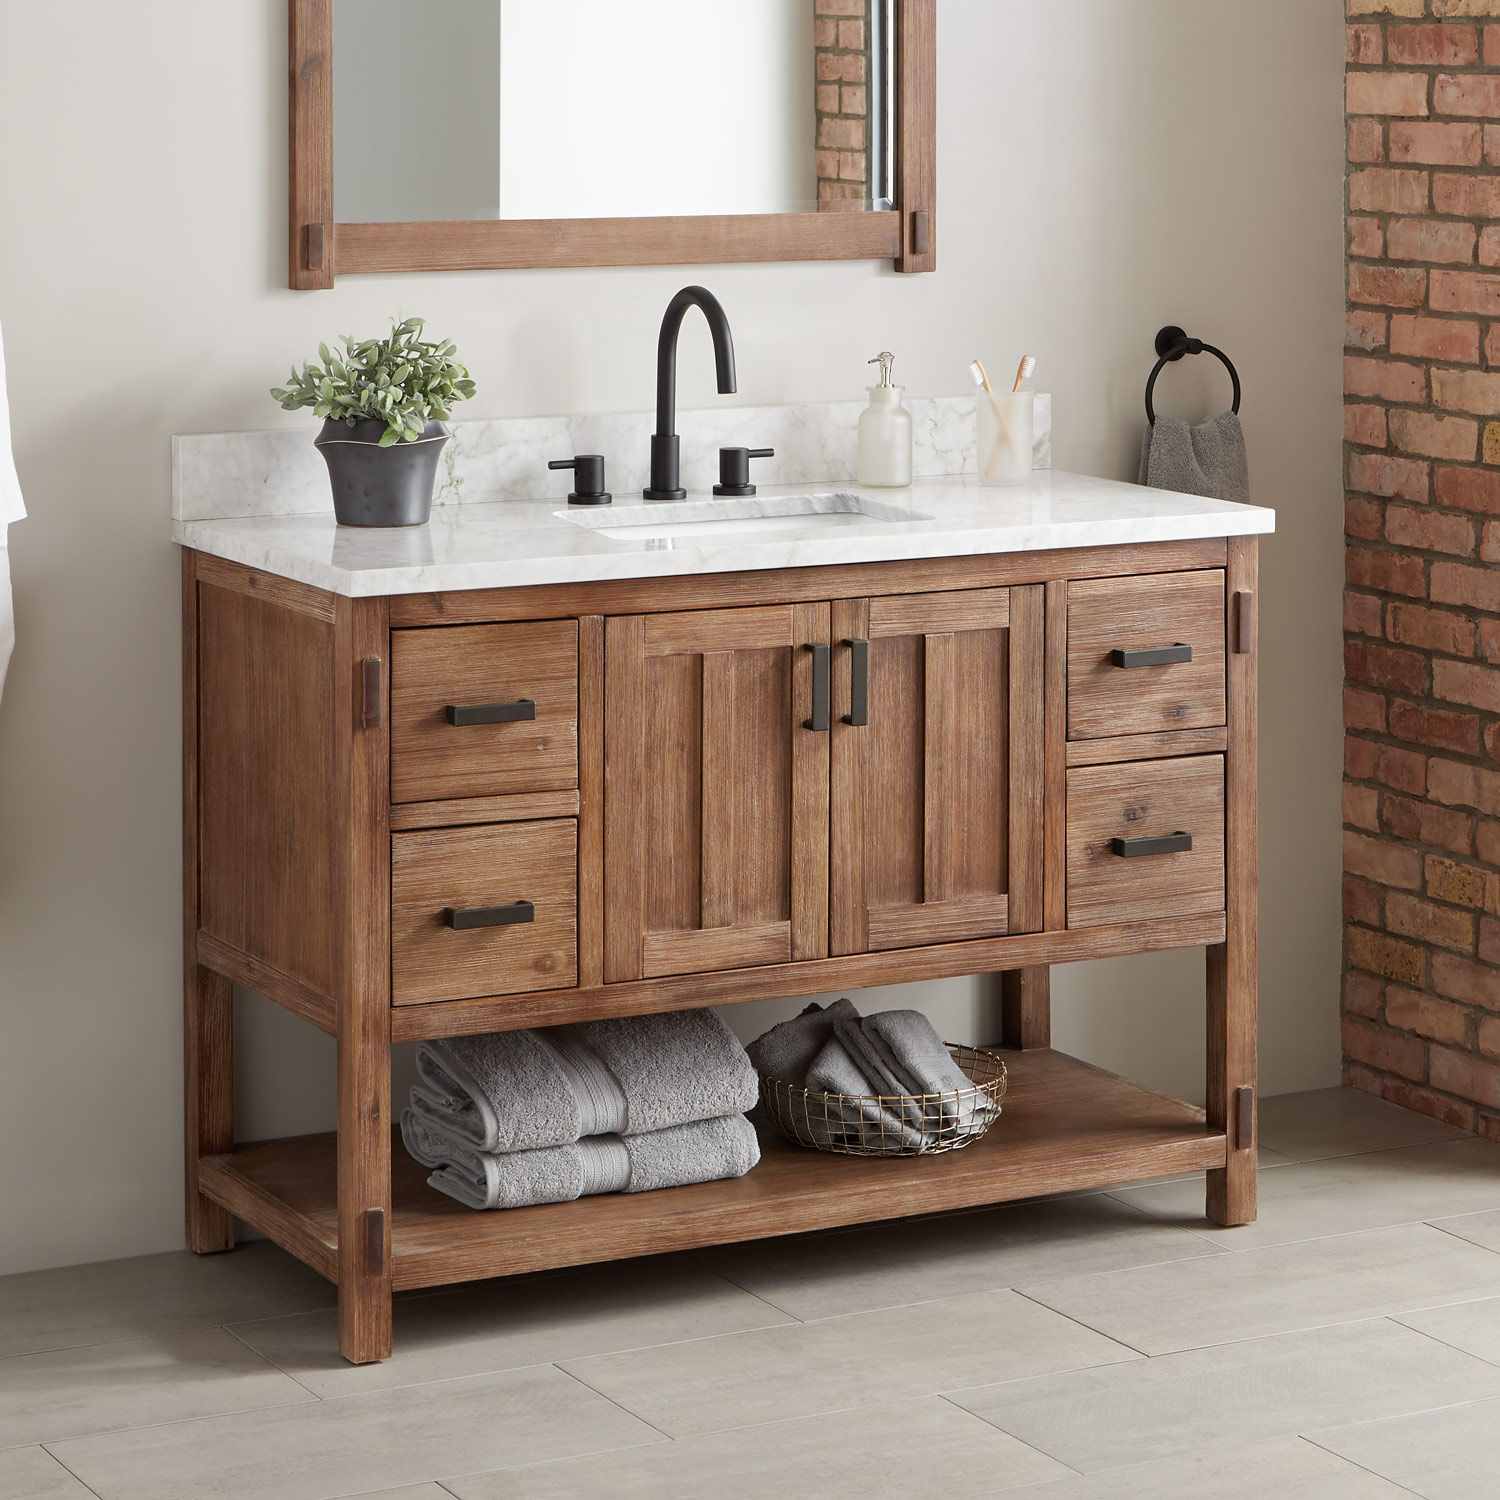 36 Morris Console Vanity For Rectangular Undermount Sink Bathroom Vanities Bathroom Wooden Bathroom Vanity Single Bathroom Vanity Vessel Sink Vanity